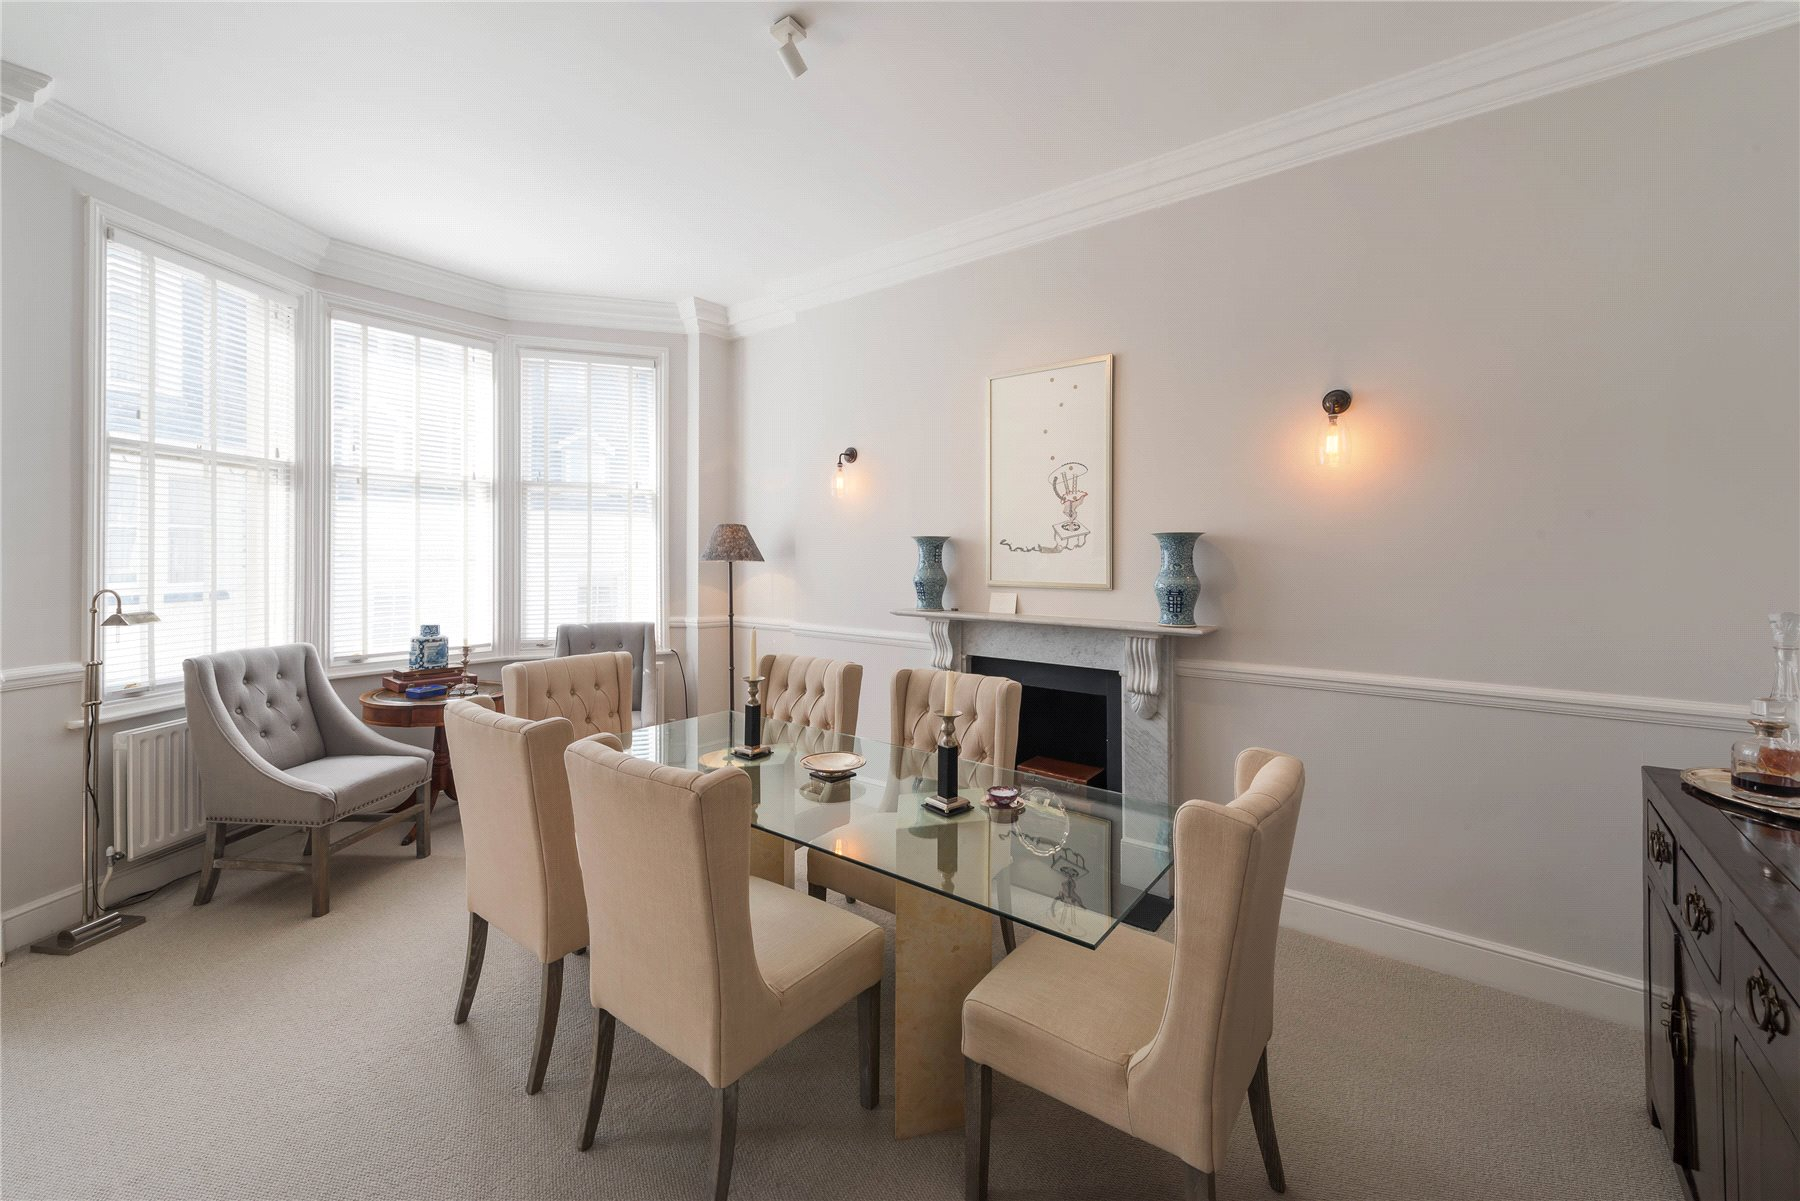 2 Bedroom Flat For Sale Dover Street London W1s 4nf